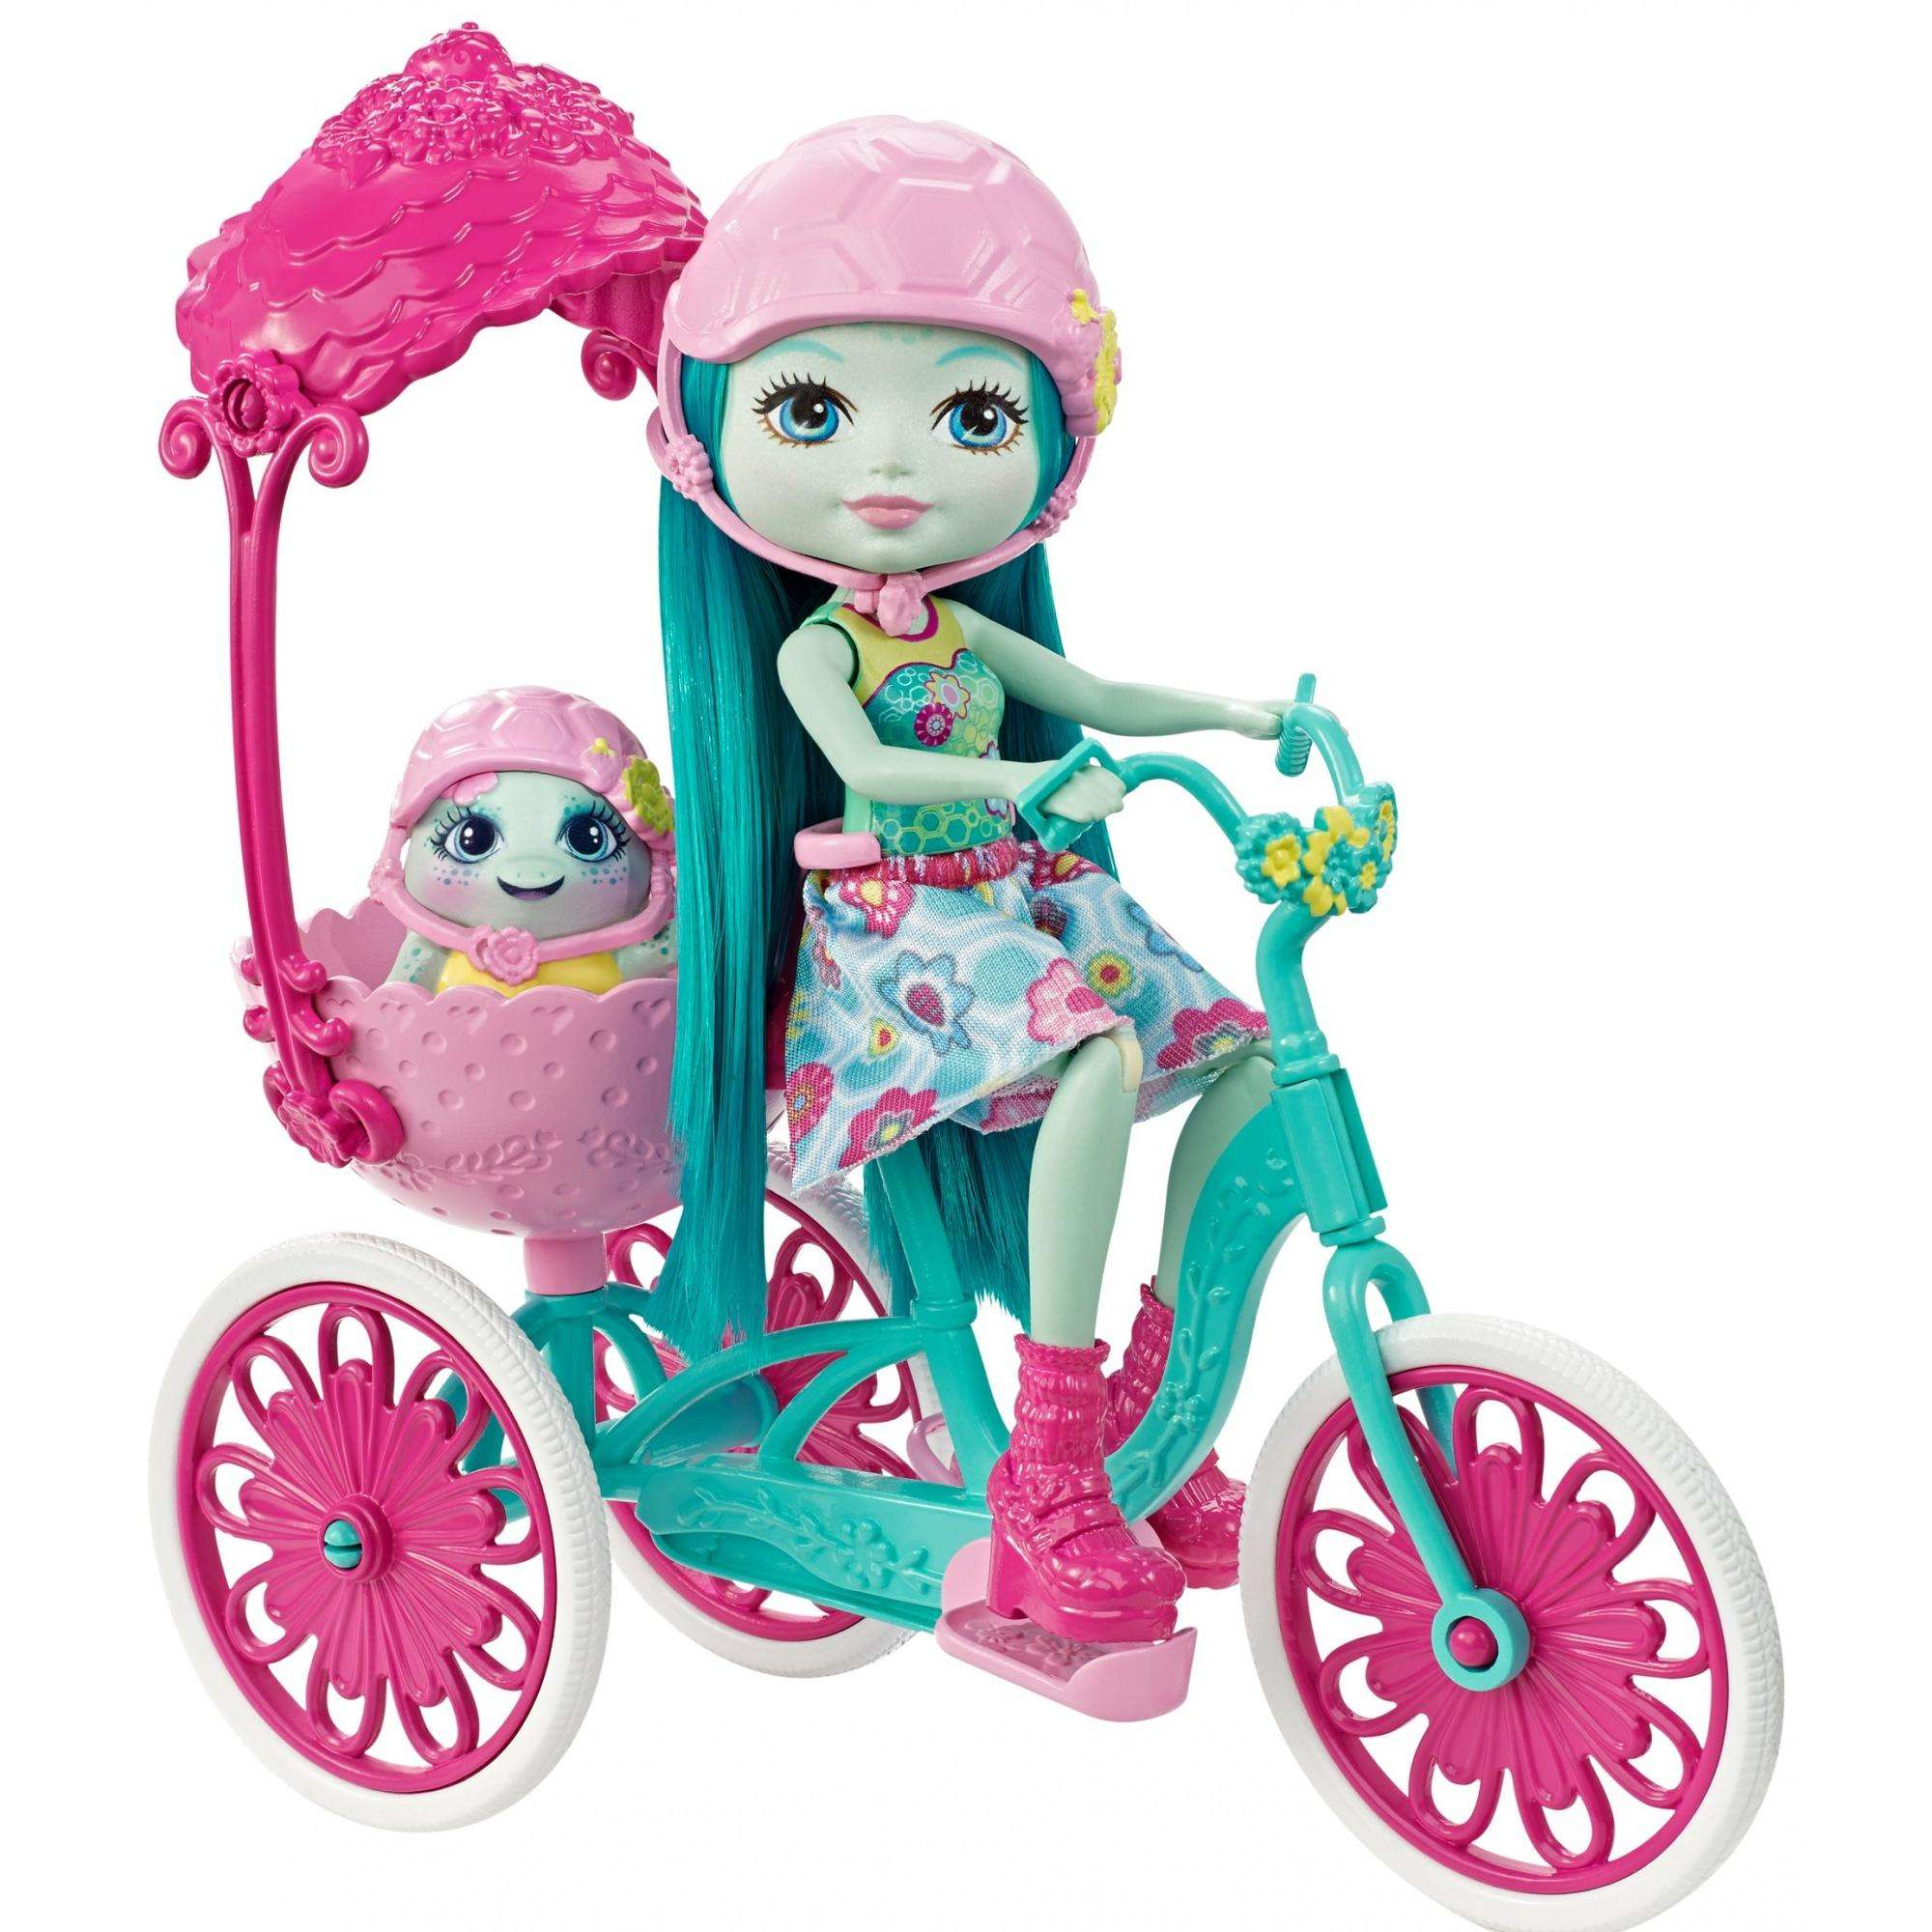 Enchantimals Built for Two Doll Playset, Turtle & Tricycle by Mattel